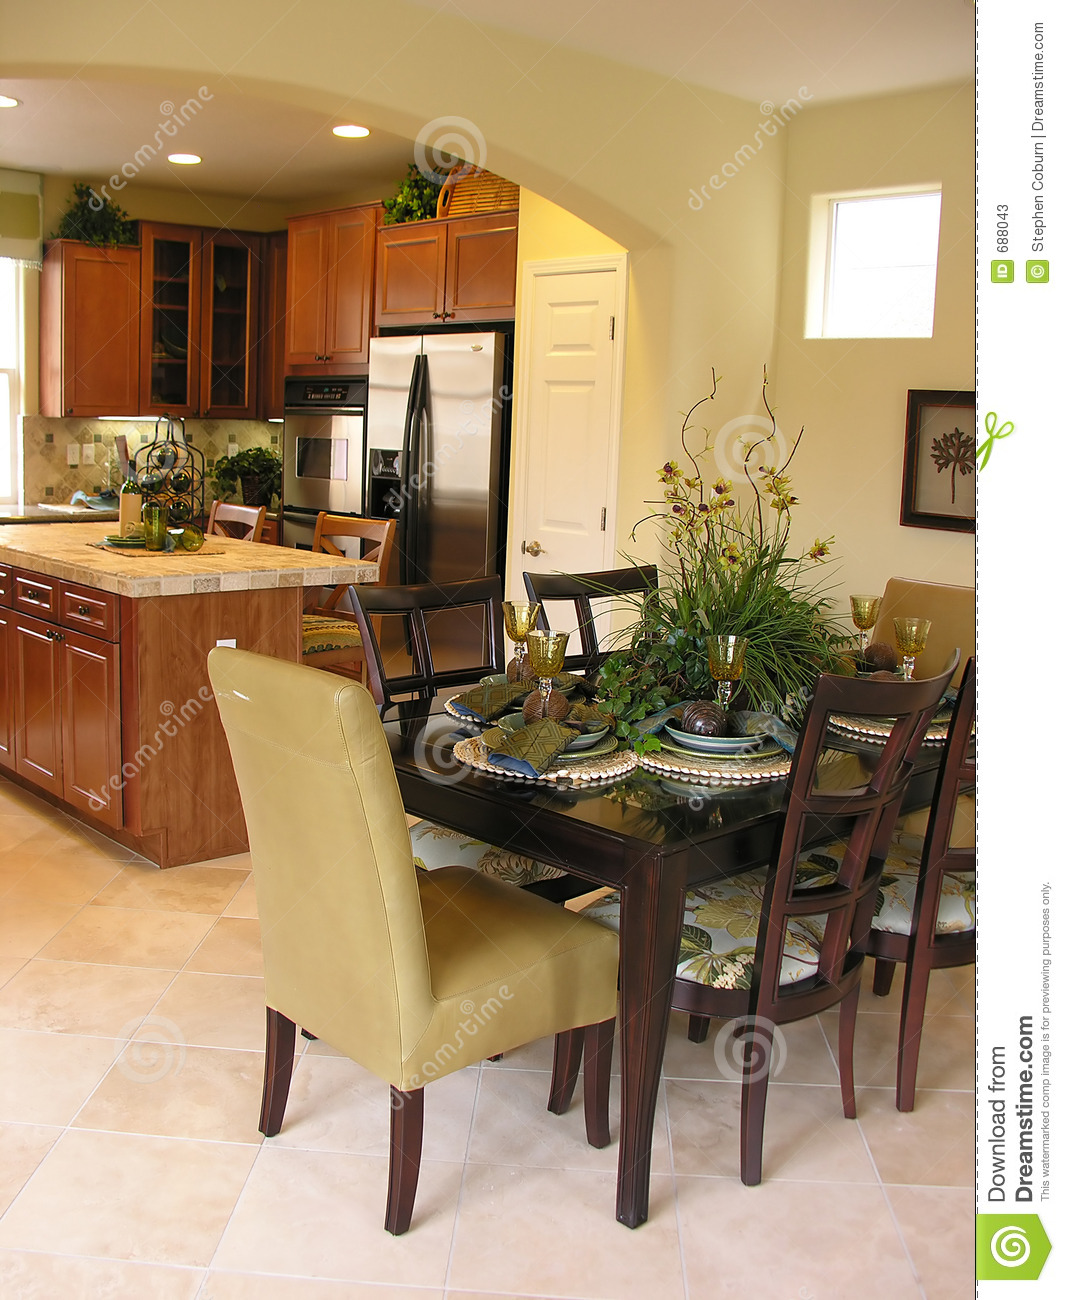 Dining Area And Kitchen Stock Photos - Image: 688043